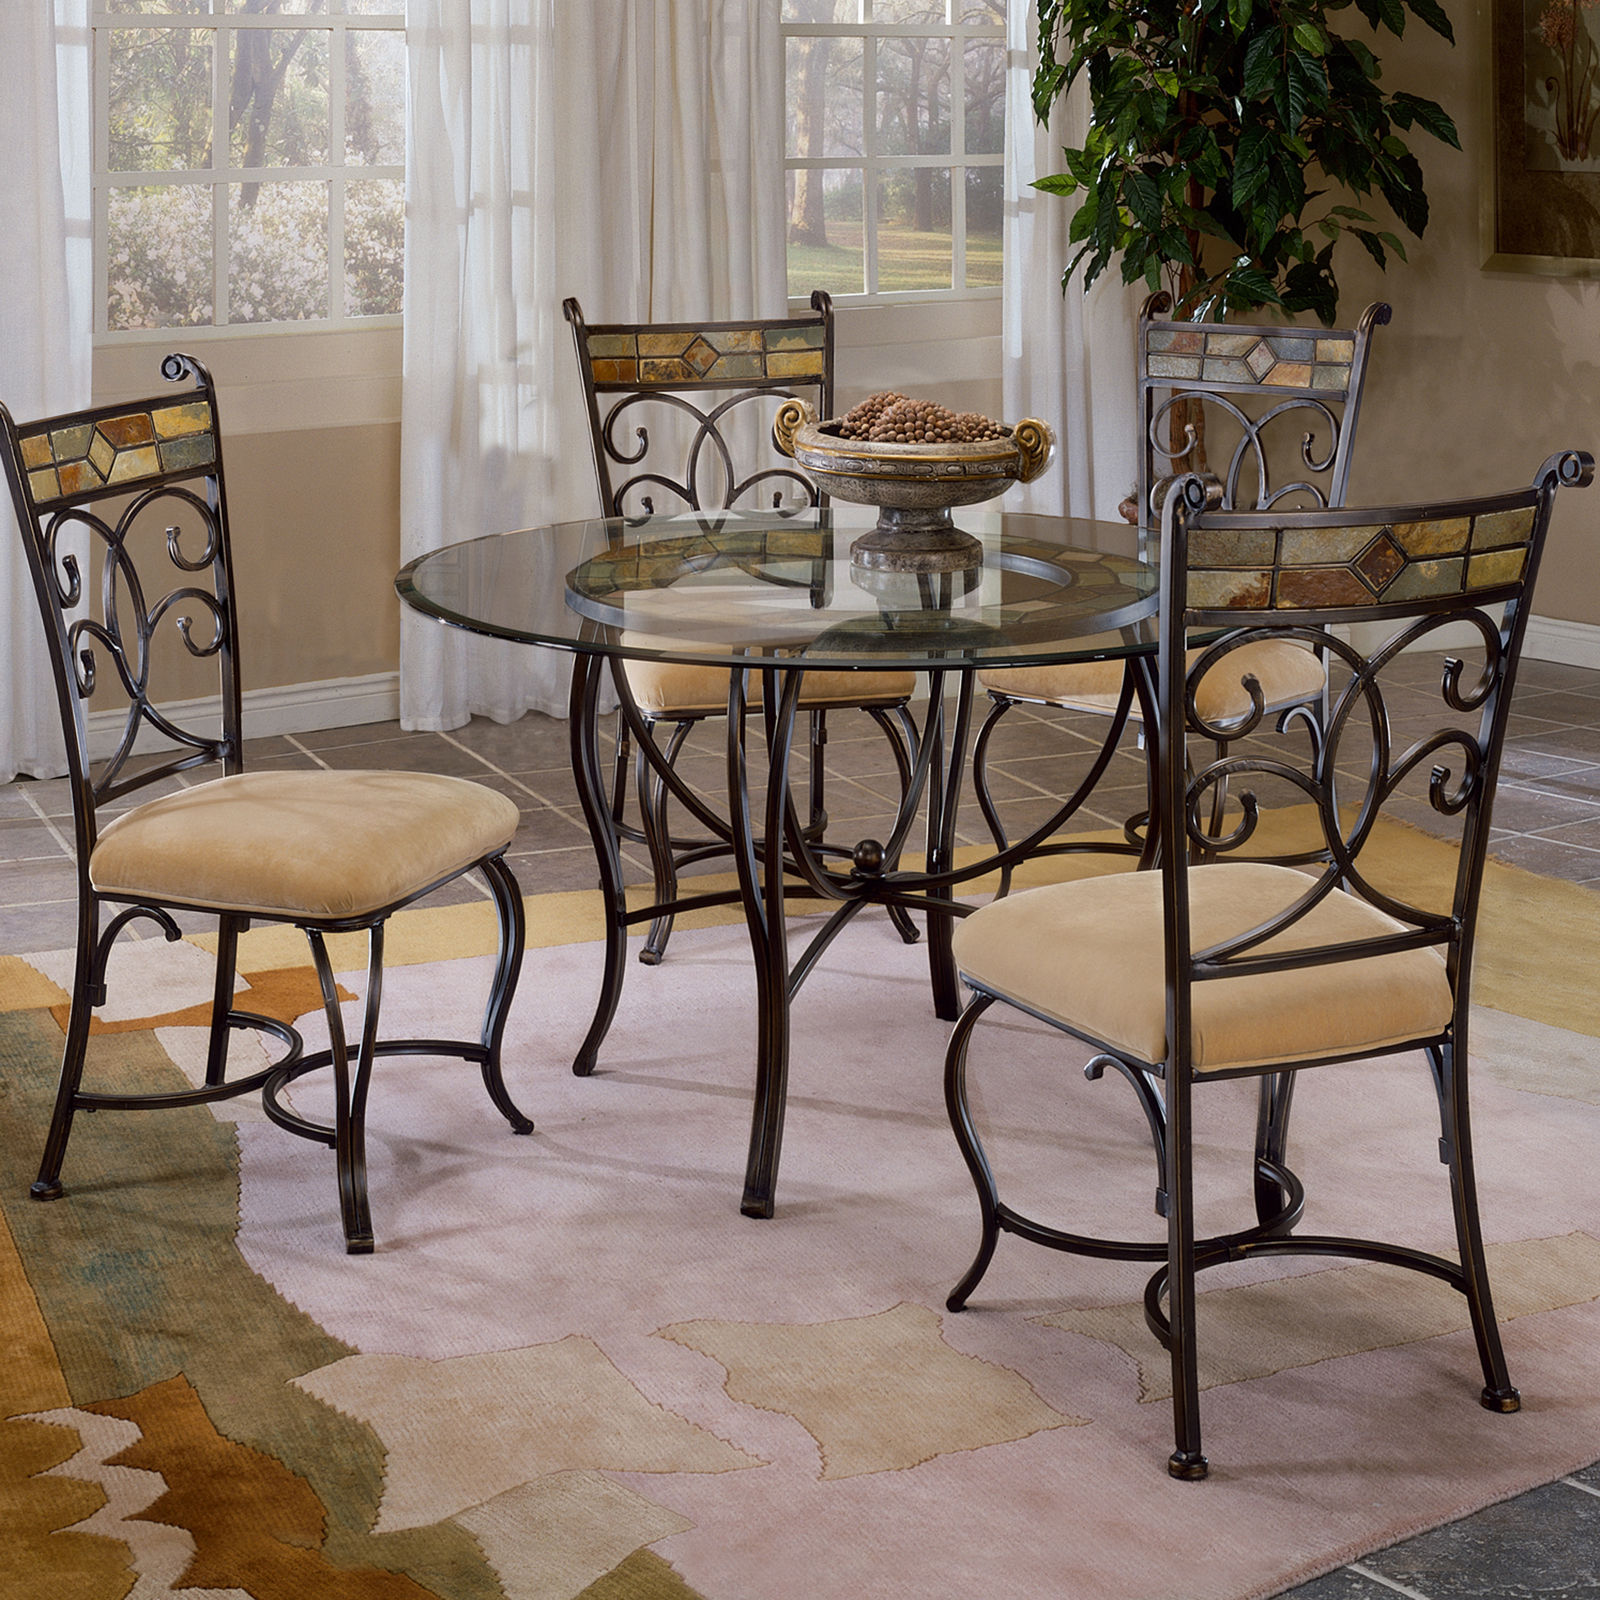 Glass Dinning Set: Hillsdale Pompei 5-Piece Dining Set With Glass Top-Black